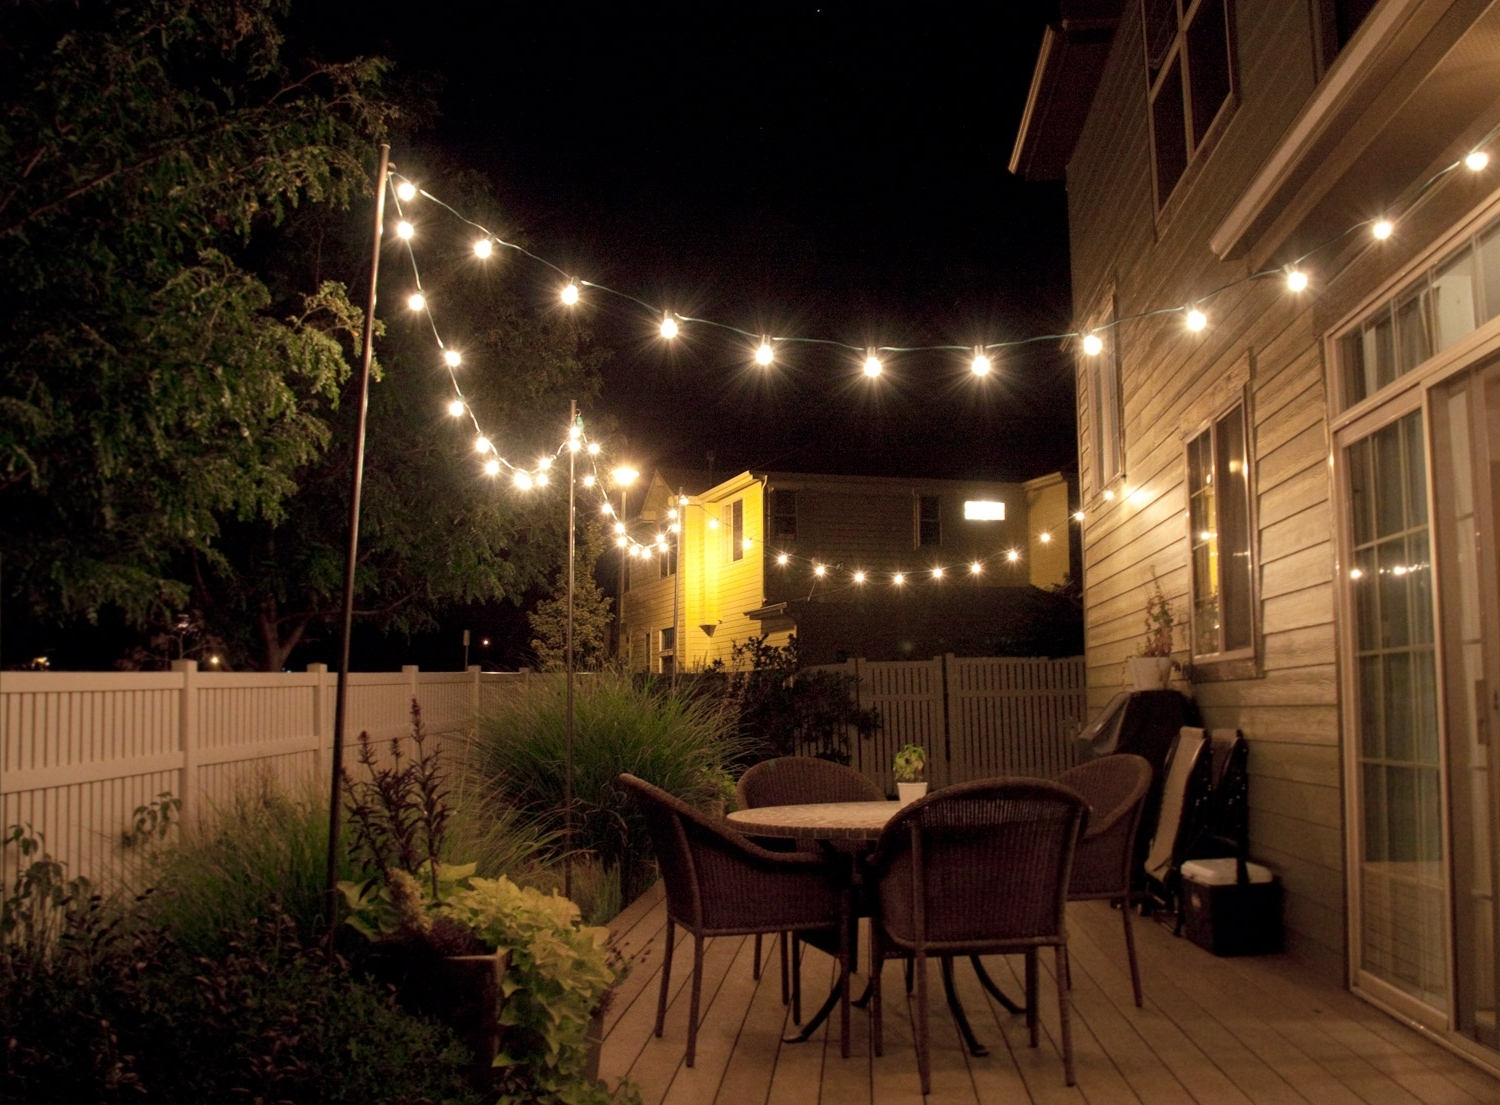 Creative Of Outdoor Lights For Patio House Decor Photos Bright July Within Most Current Diy Outdoor Lanterns (View 14 of 20)